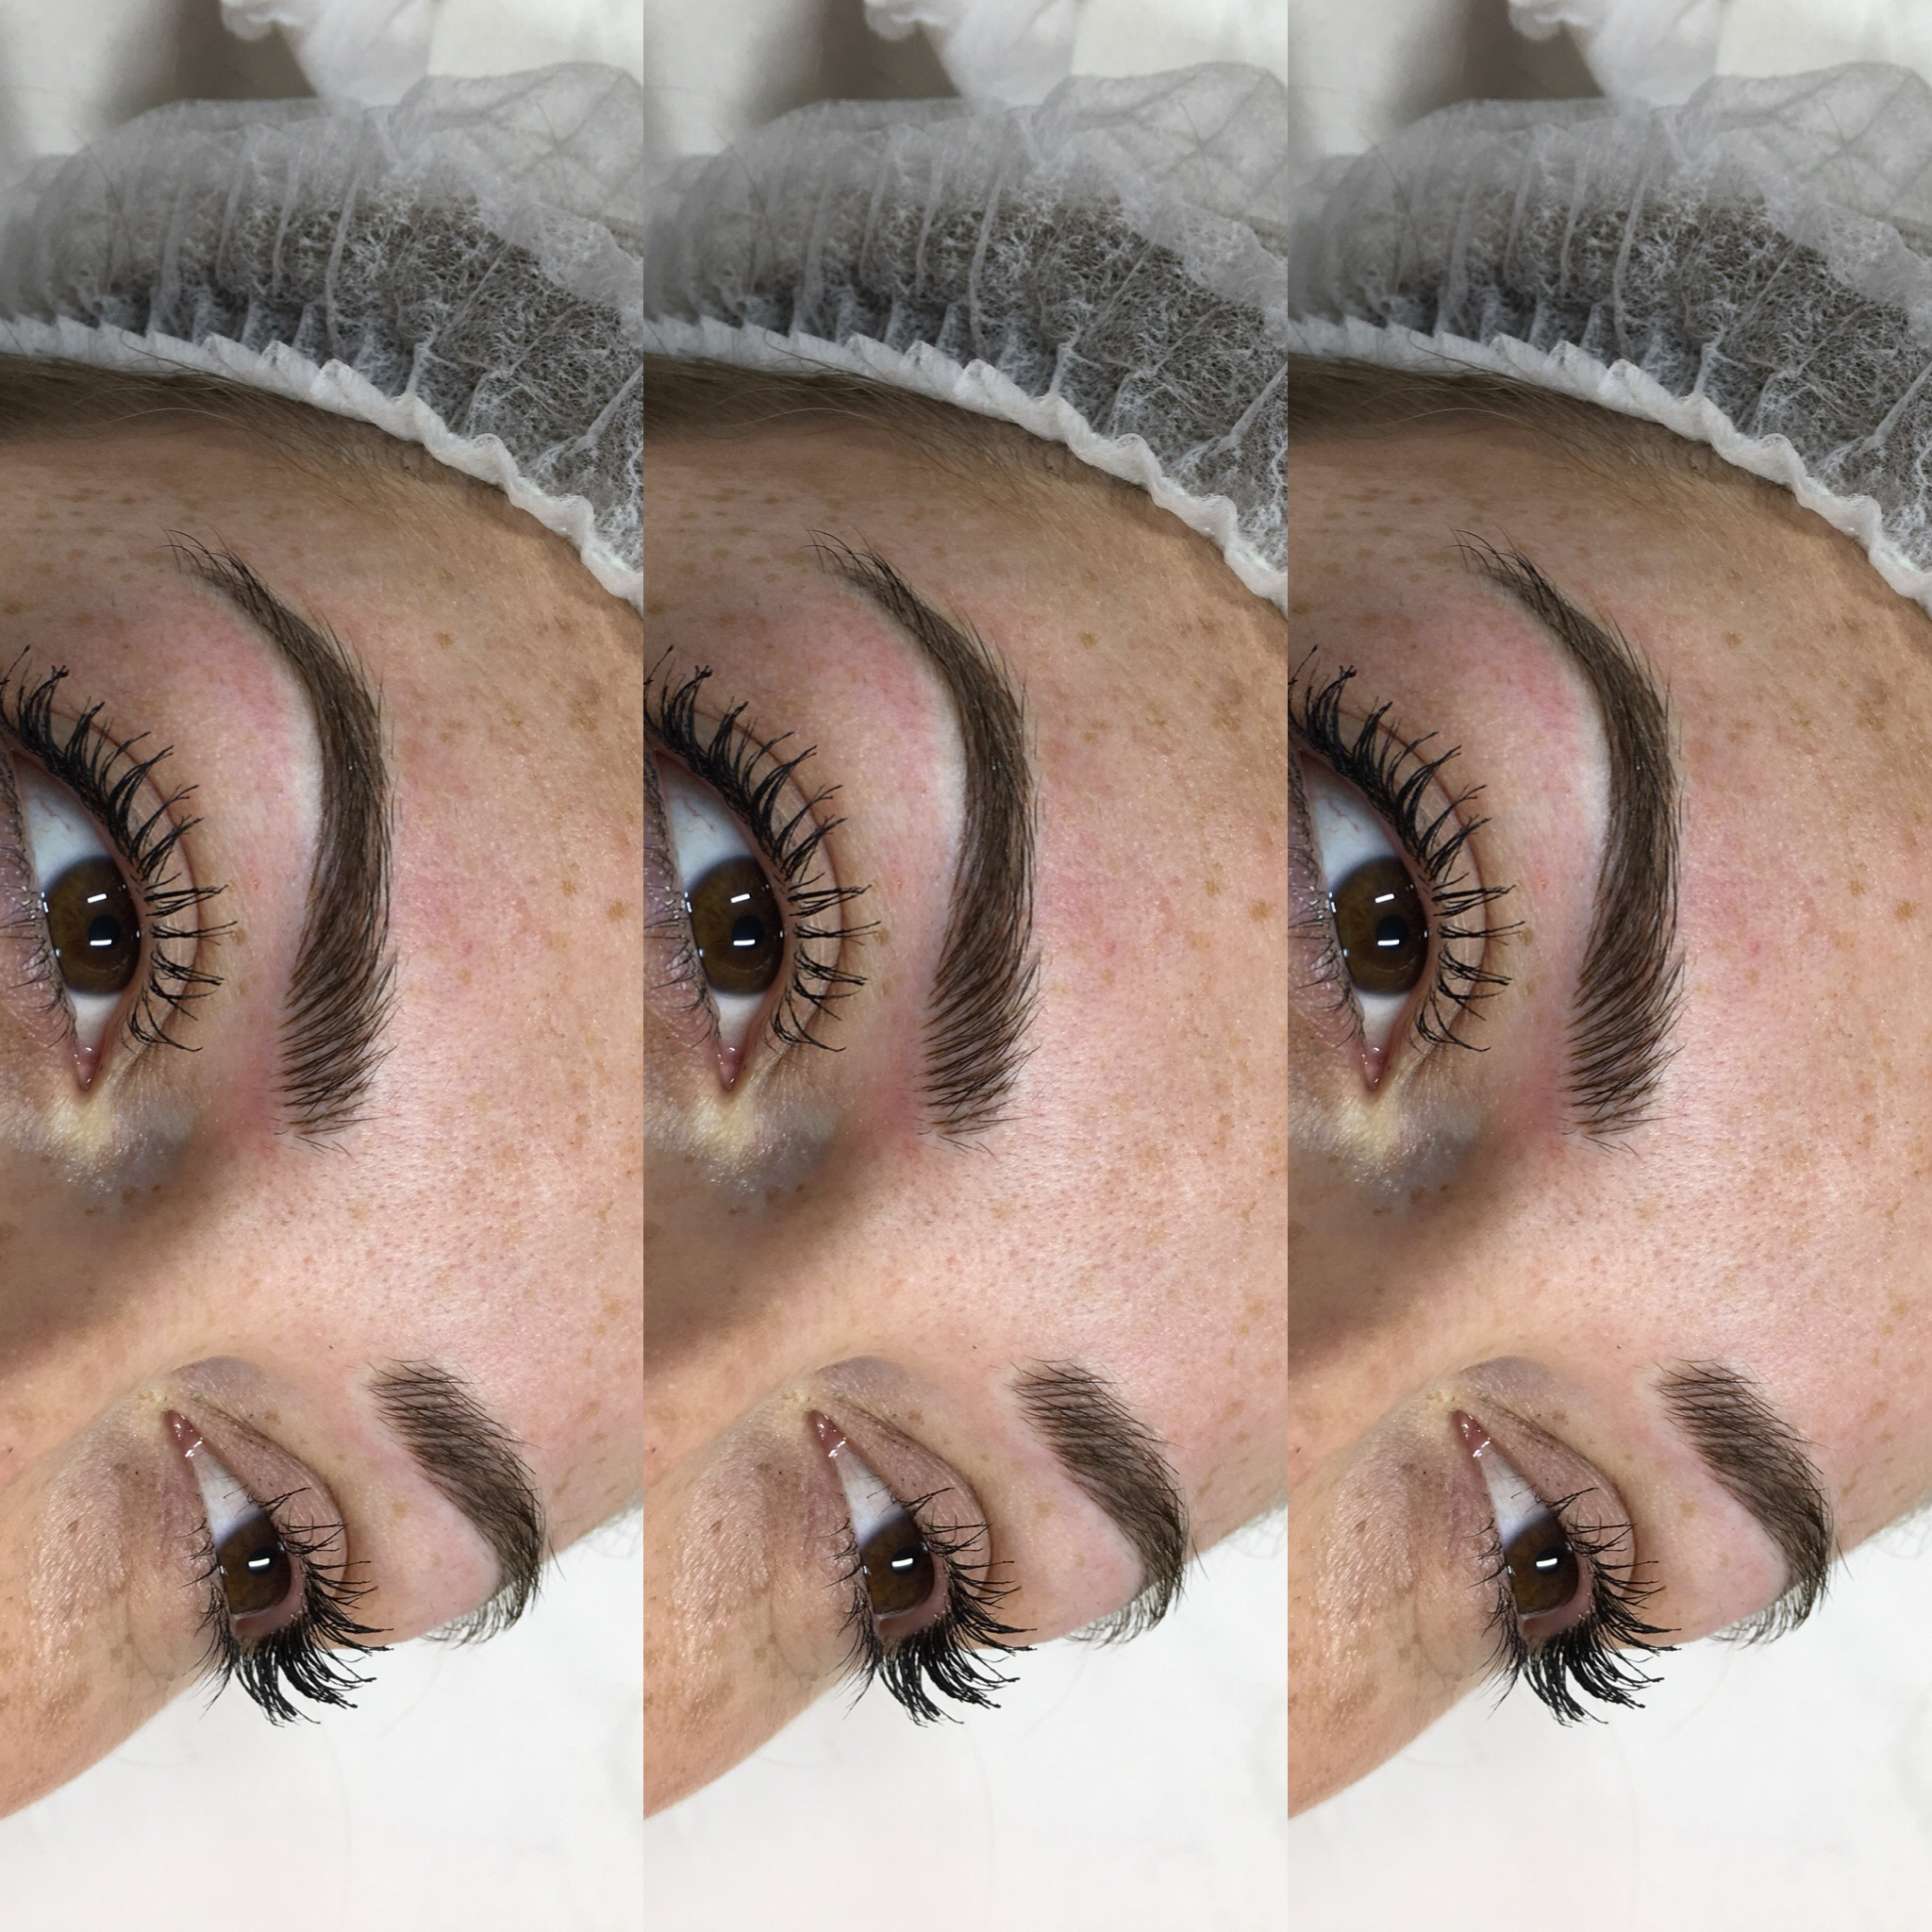 3D Microblading (Hairstroke method)